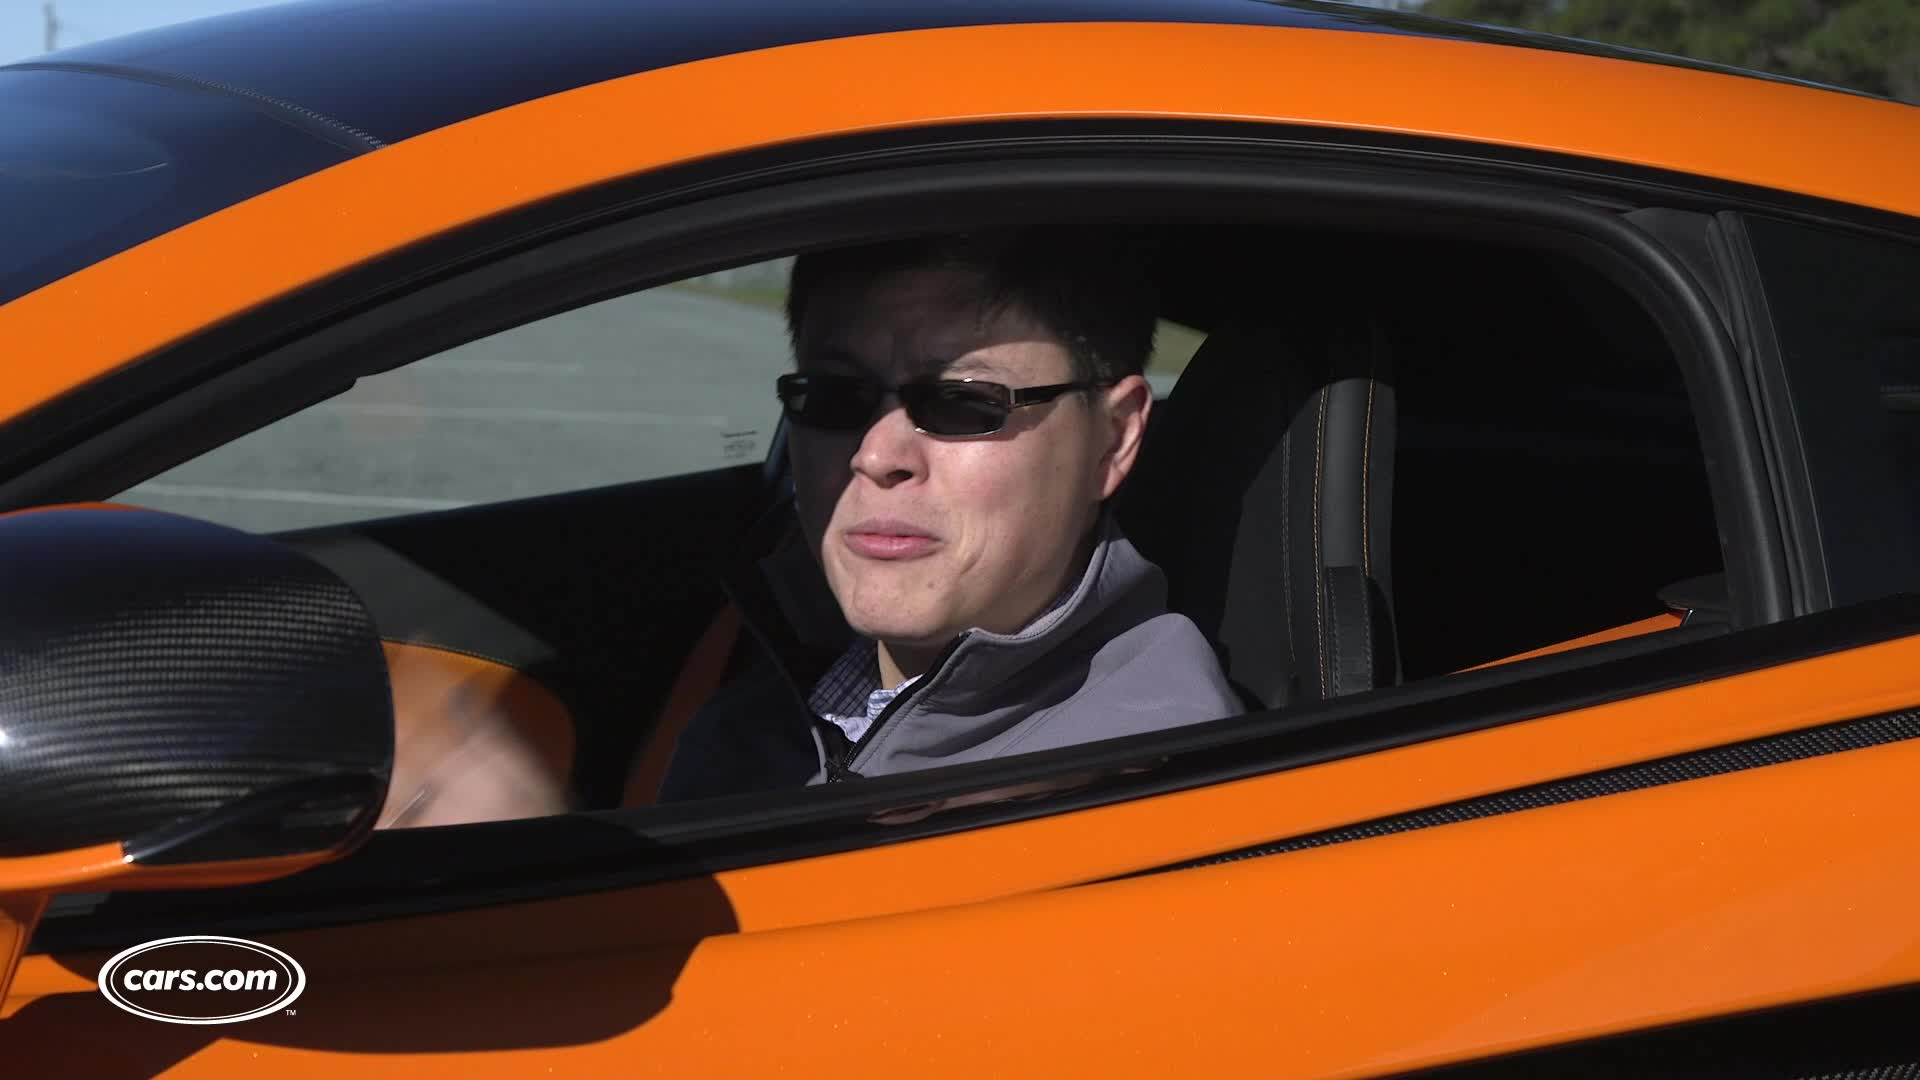 Video: 2016 McLaren 570S Coupe at Roebling Road Raceway